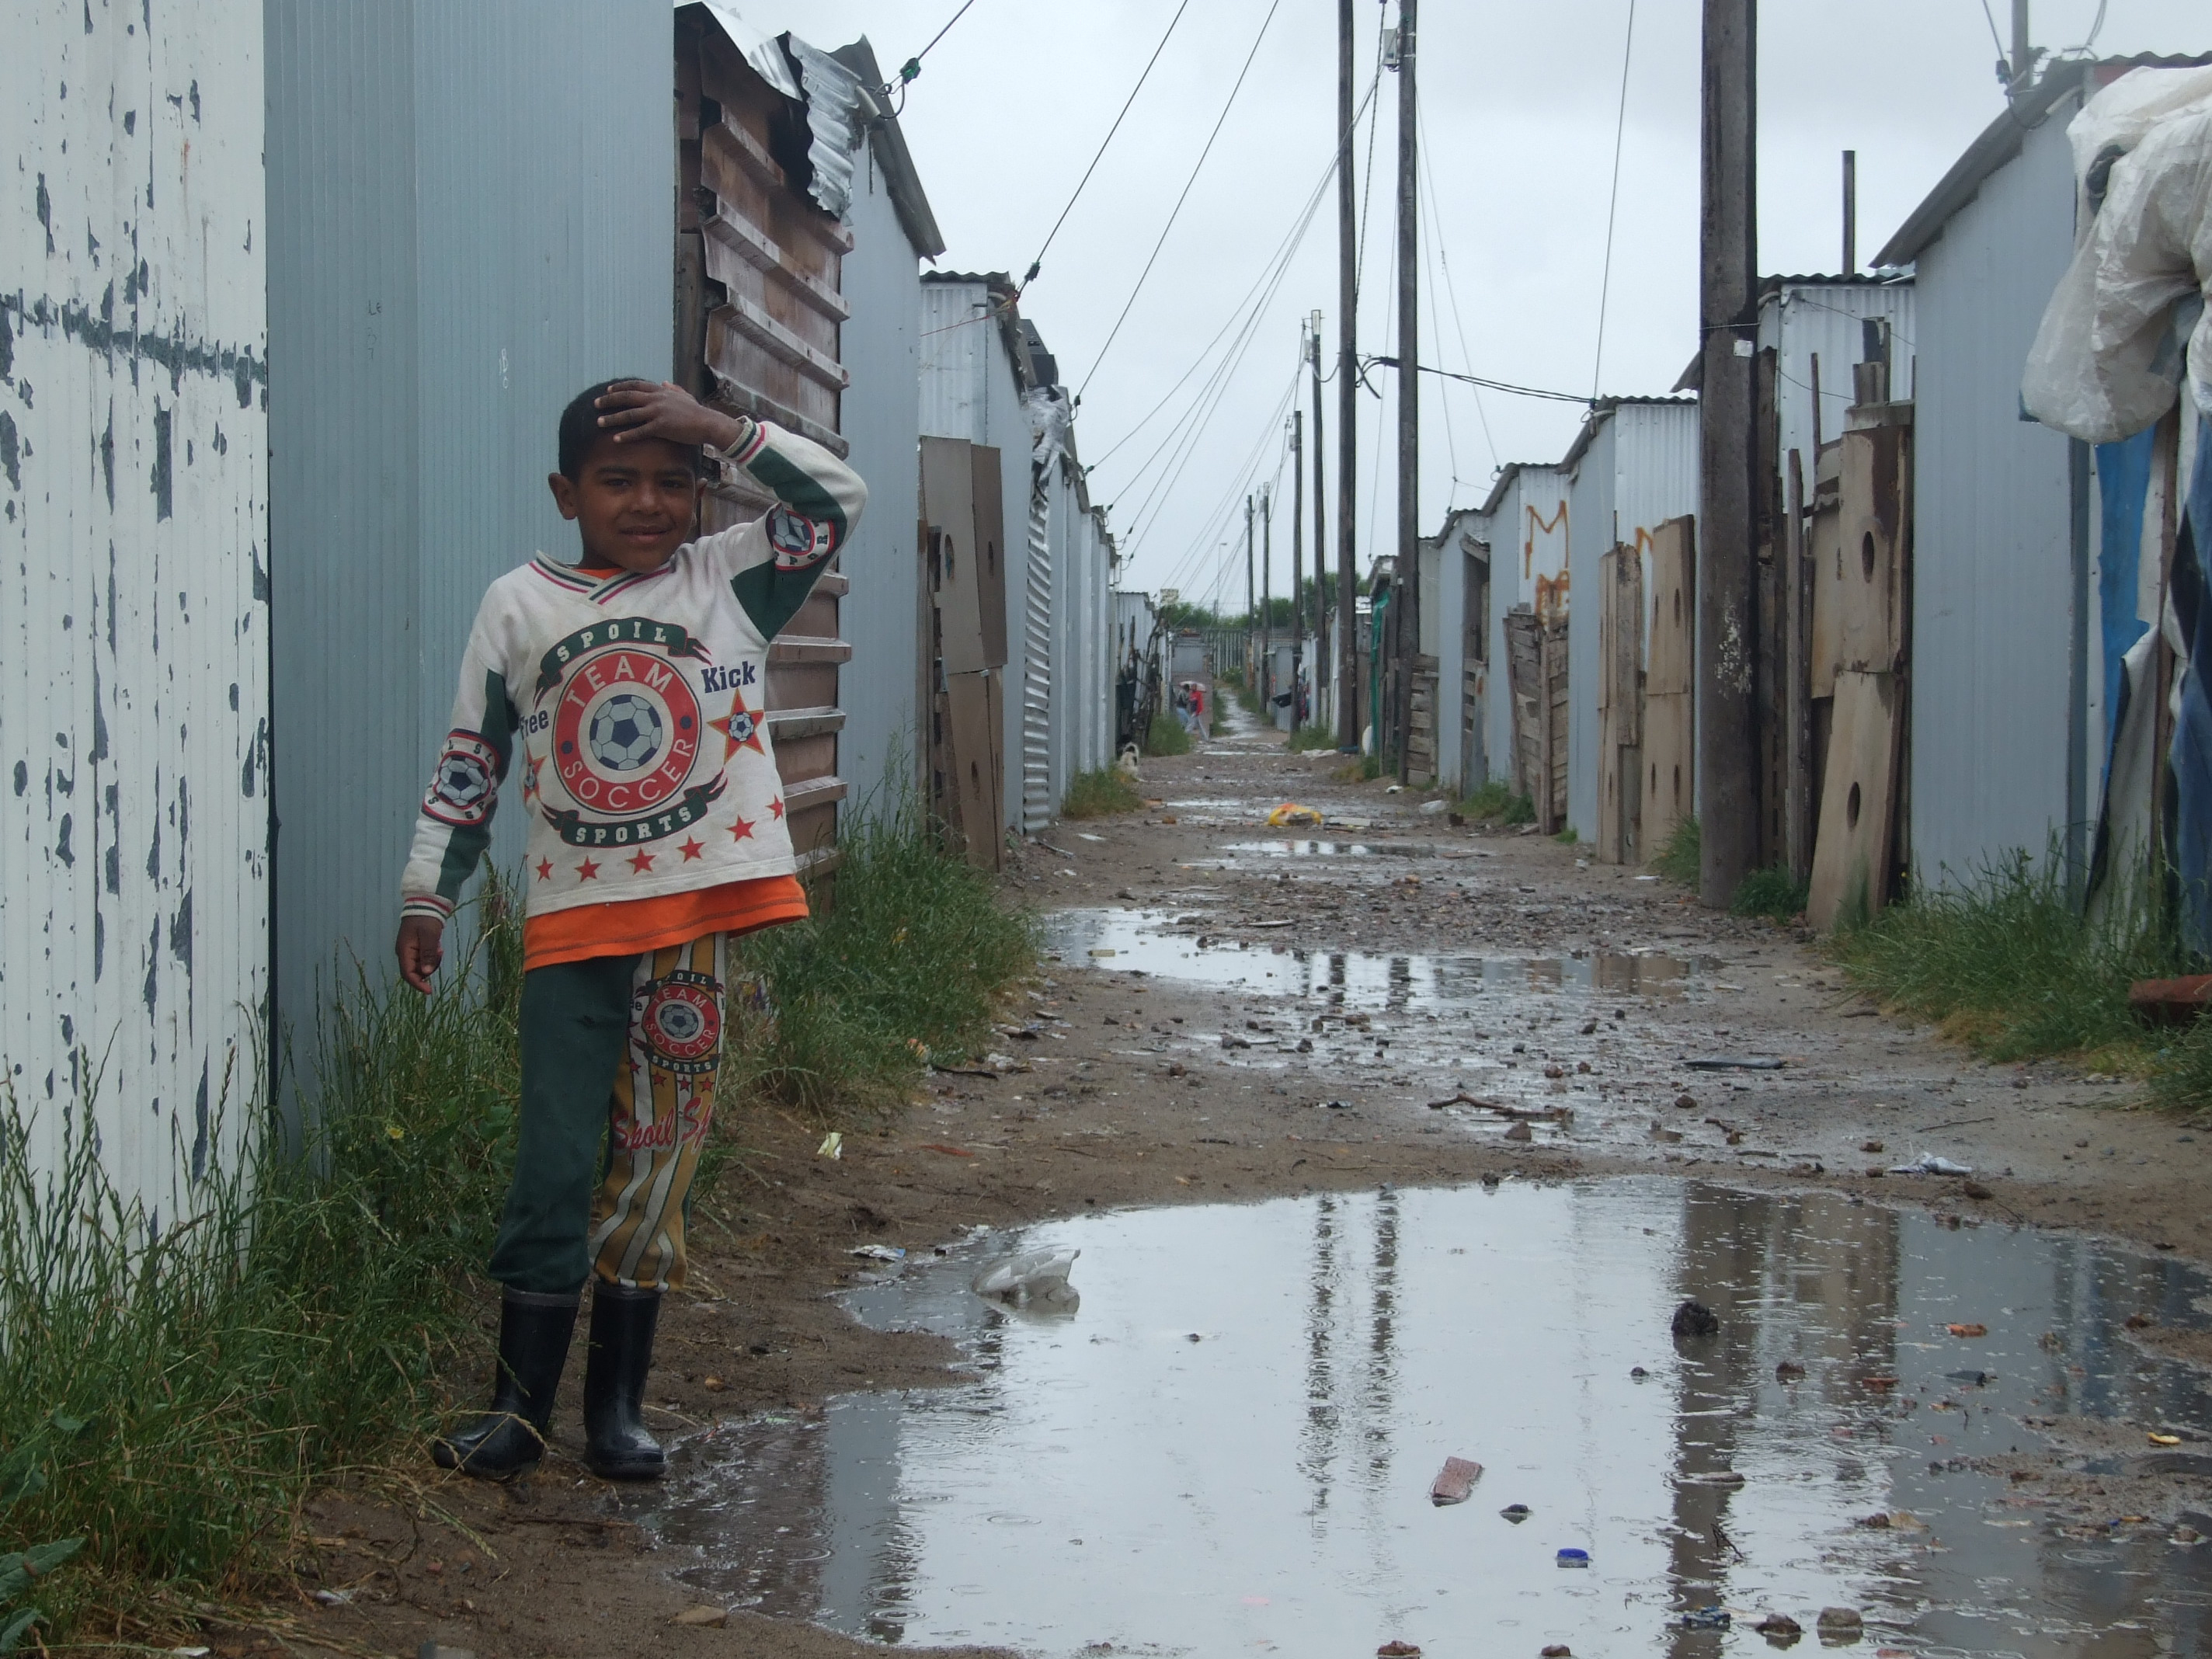 A child on the streets of Blikkiesdorp, near Cape Town, South Africa